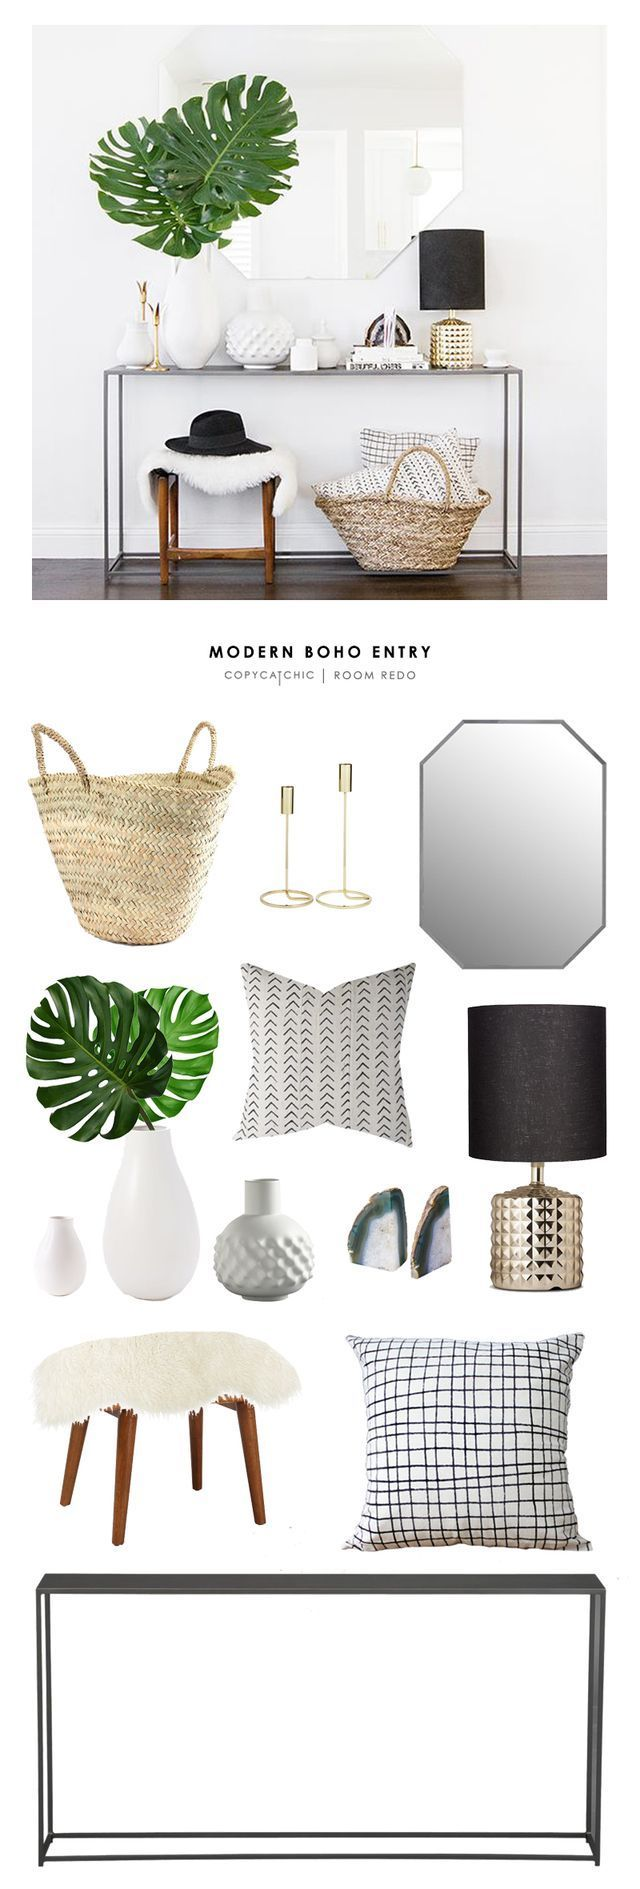 TOTAL   $1,198    CONSOLE $299   STOOL $96   BASKET $22   MIRROR $300   BOOKENDS $44   CANDLESTICKS $40   LARGE VASE $129   TEXTURED VASE $30   SMALL VASE $19   LAMP $28   LAMP SHADE $60   GRID PILLOW